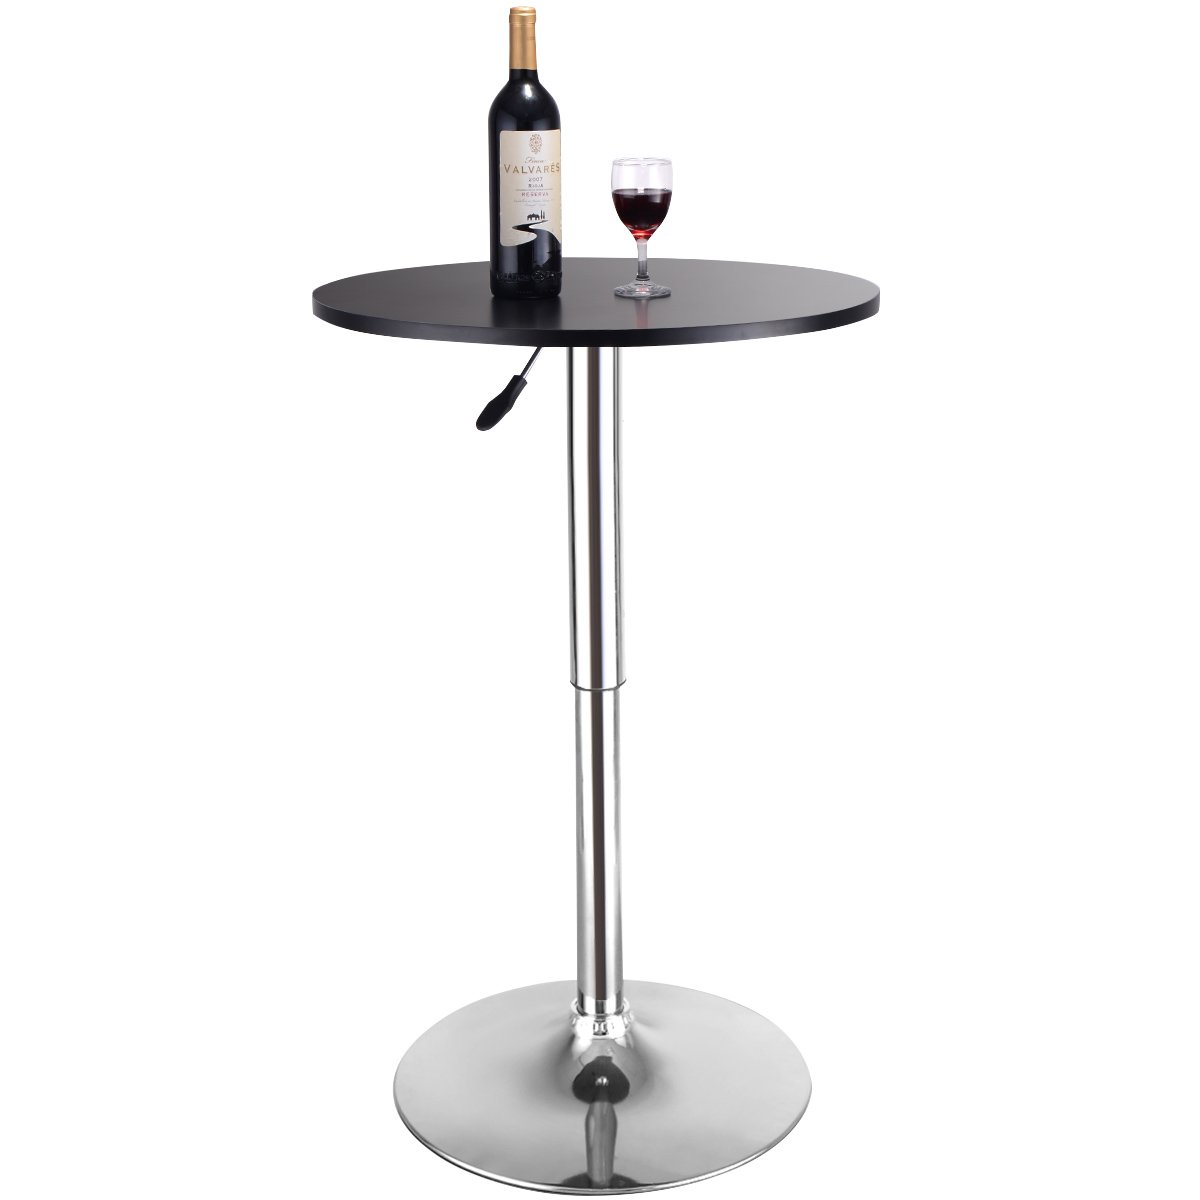 Costway Round Bar Table 360 Swivel MDF Top Coffee Bistro Pub Cafe Adjustable Height 70-91 cm High Black (1)